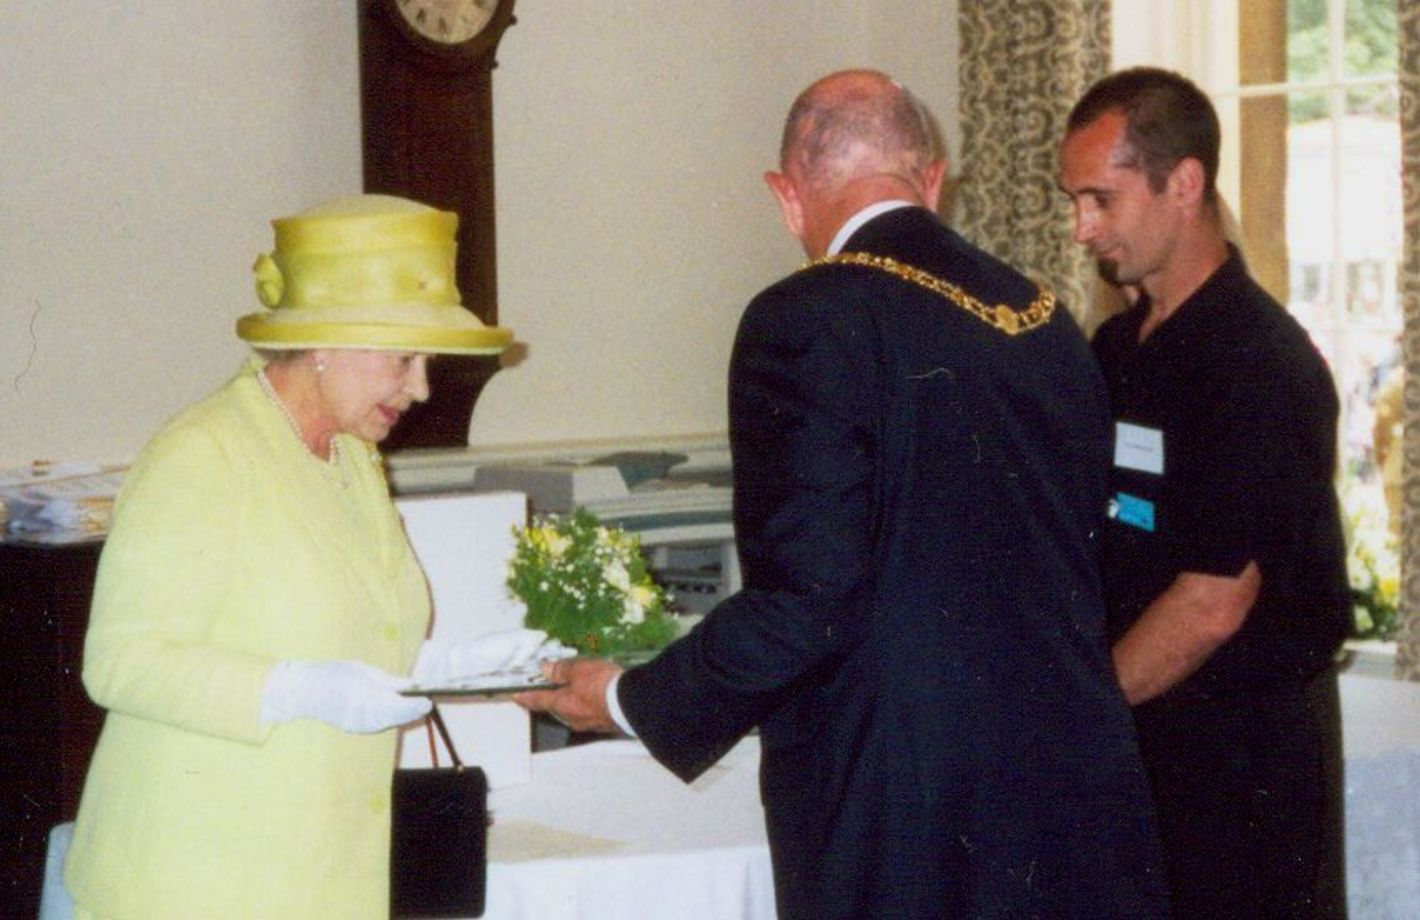 Presentation of commissioned bowl to HM Queen Elizabeth II